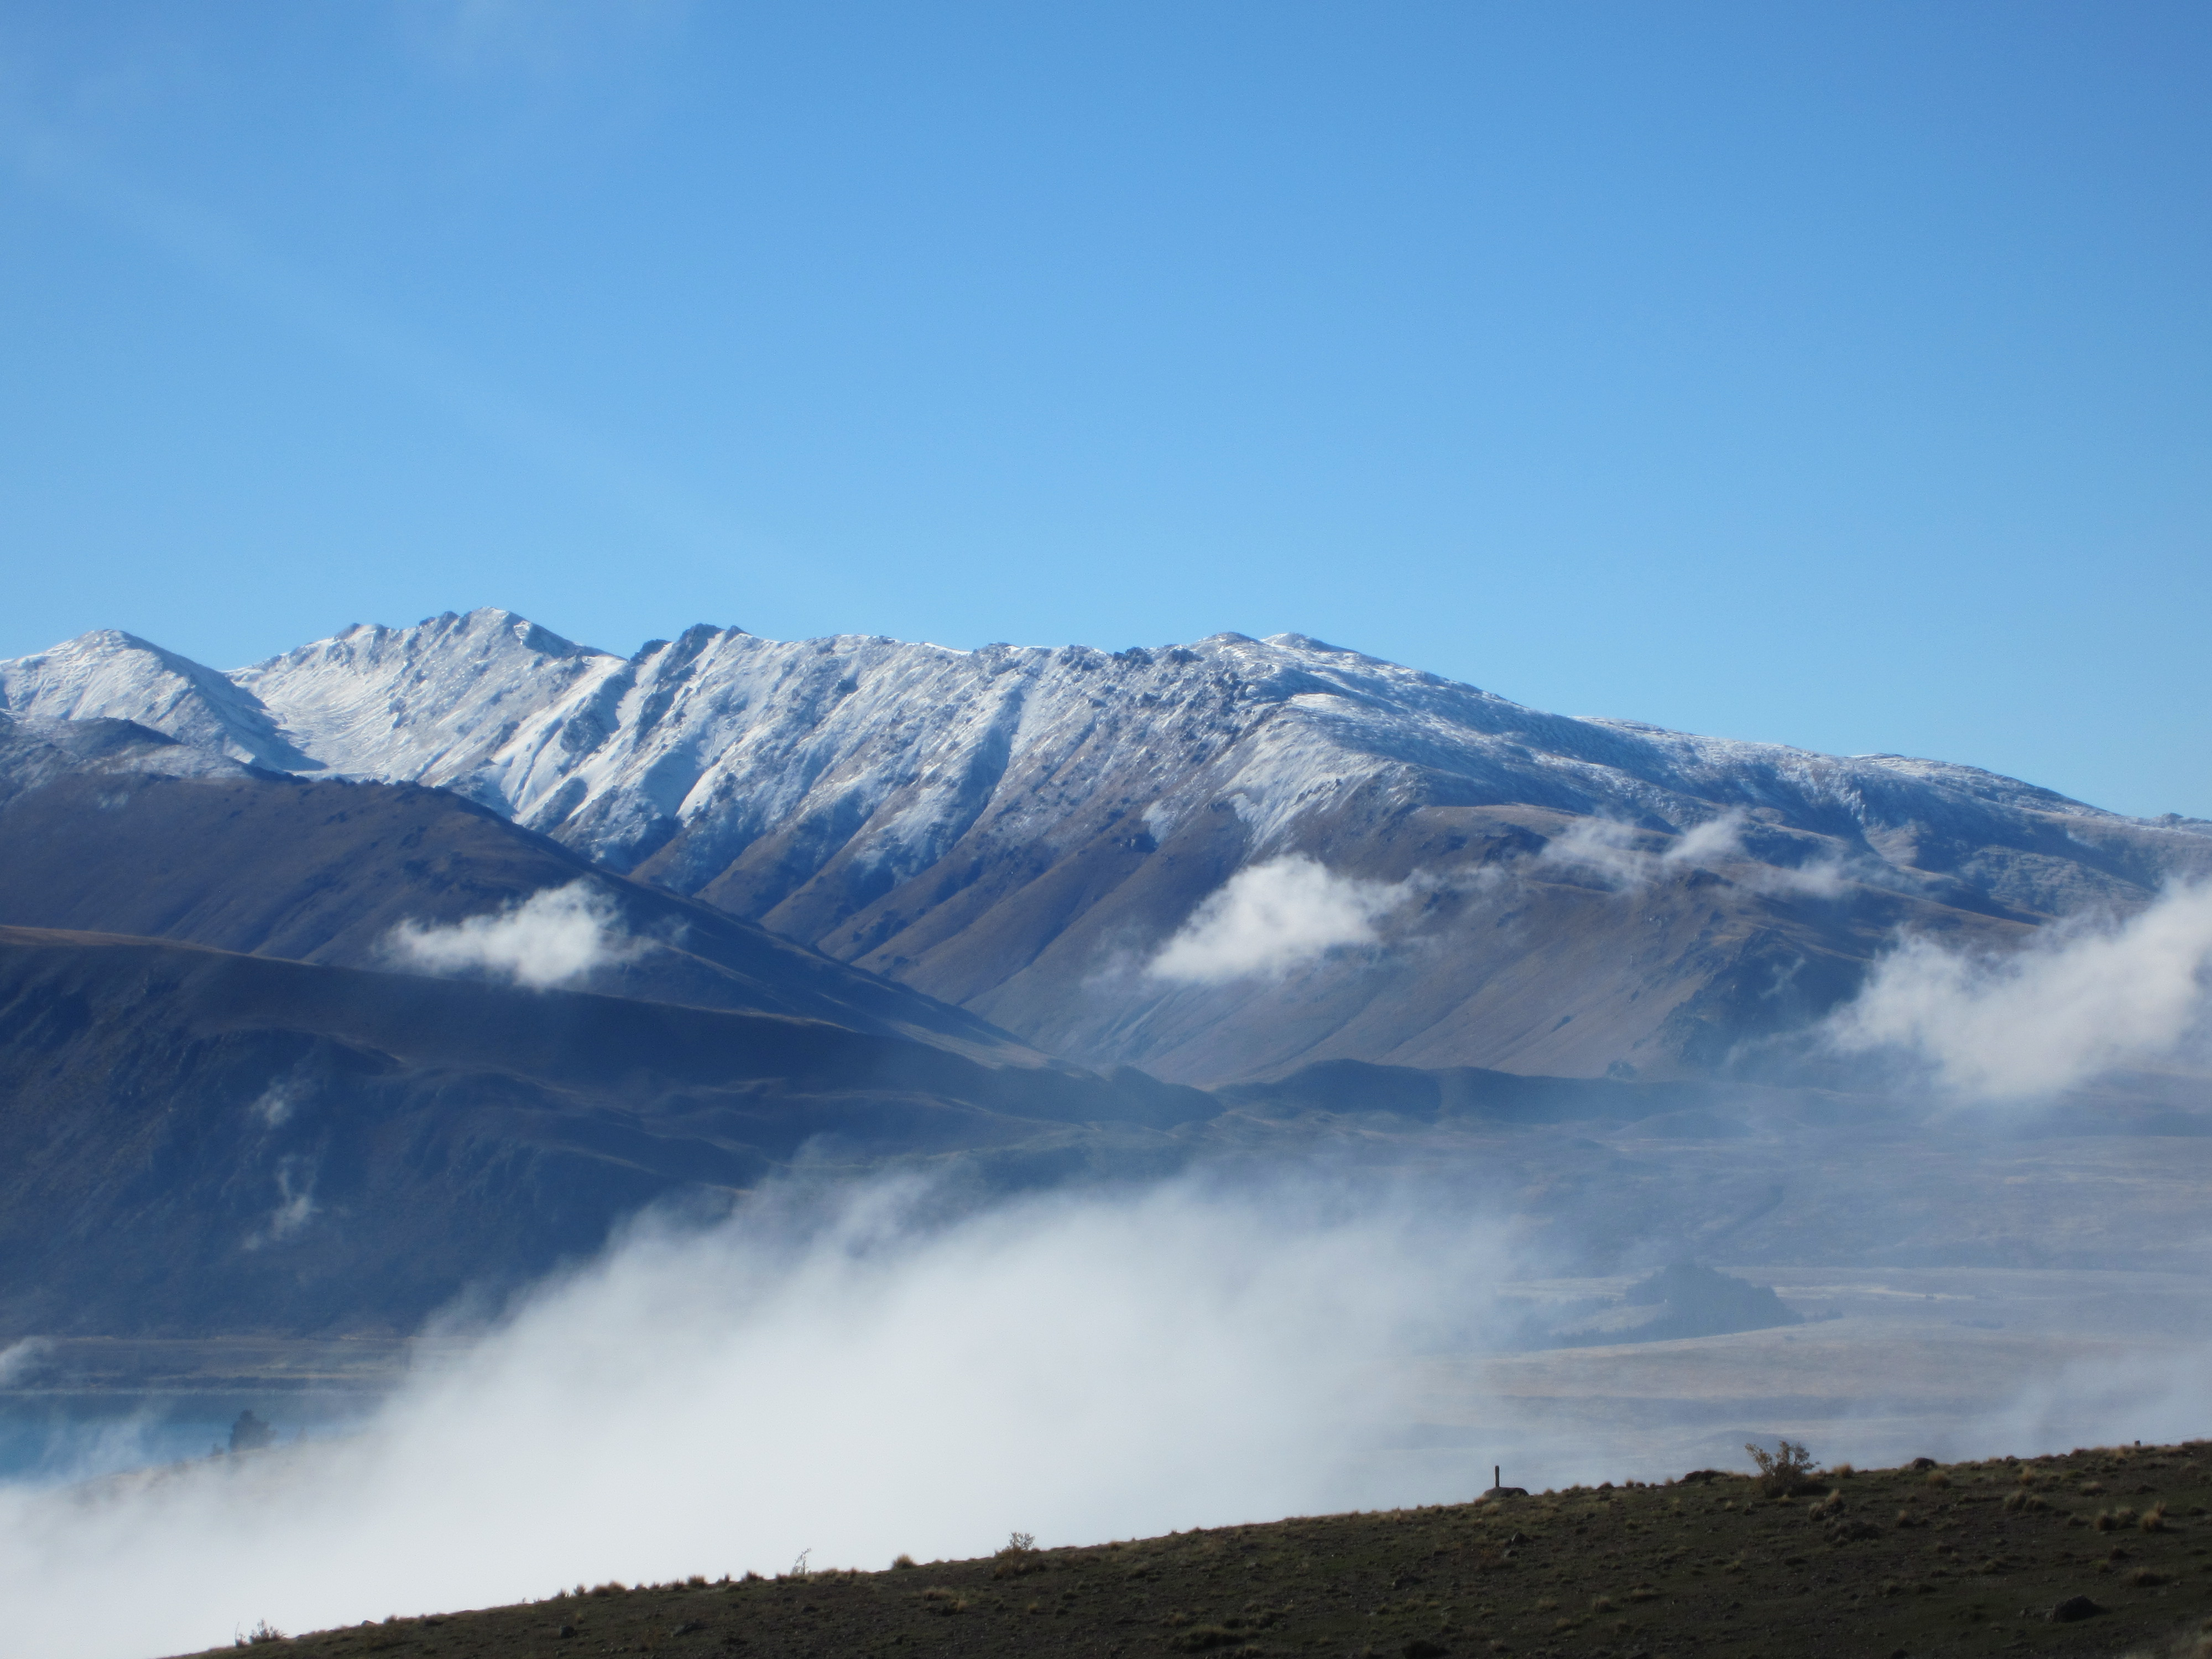 New Zealand, Land of the Long White Cloud